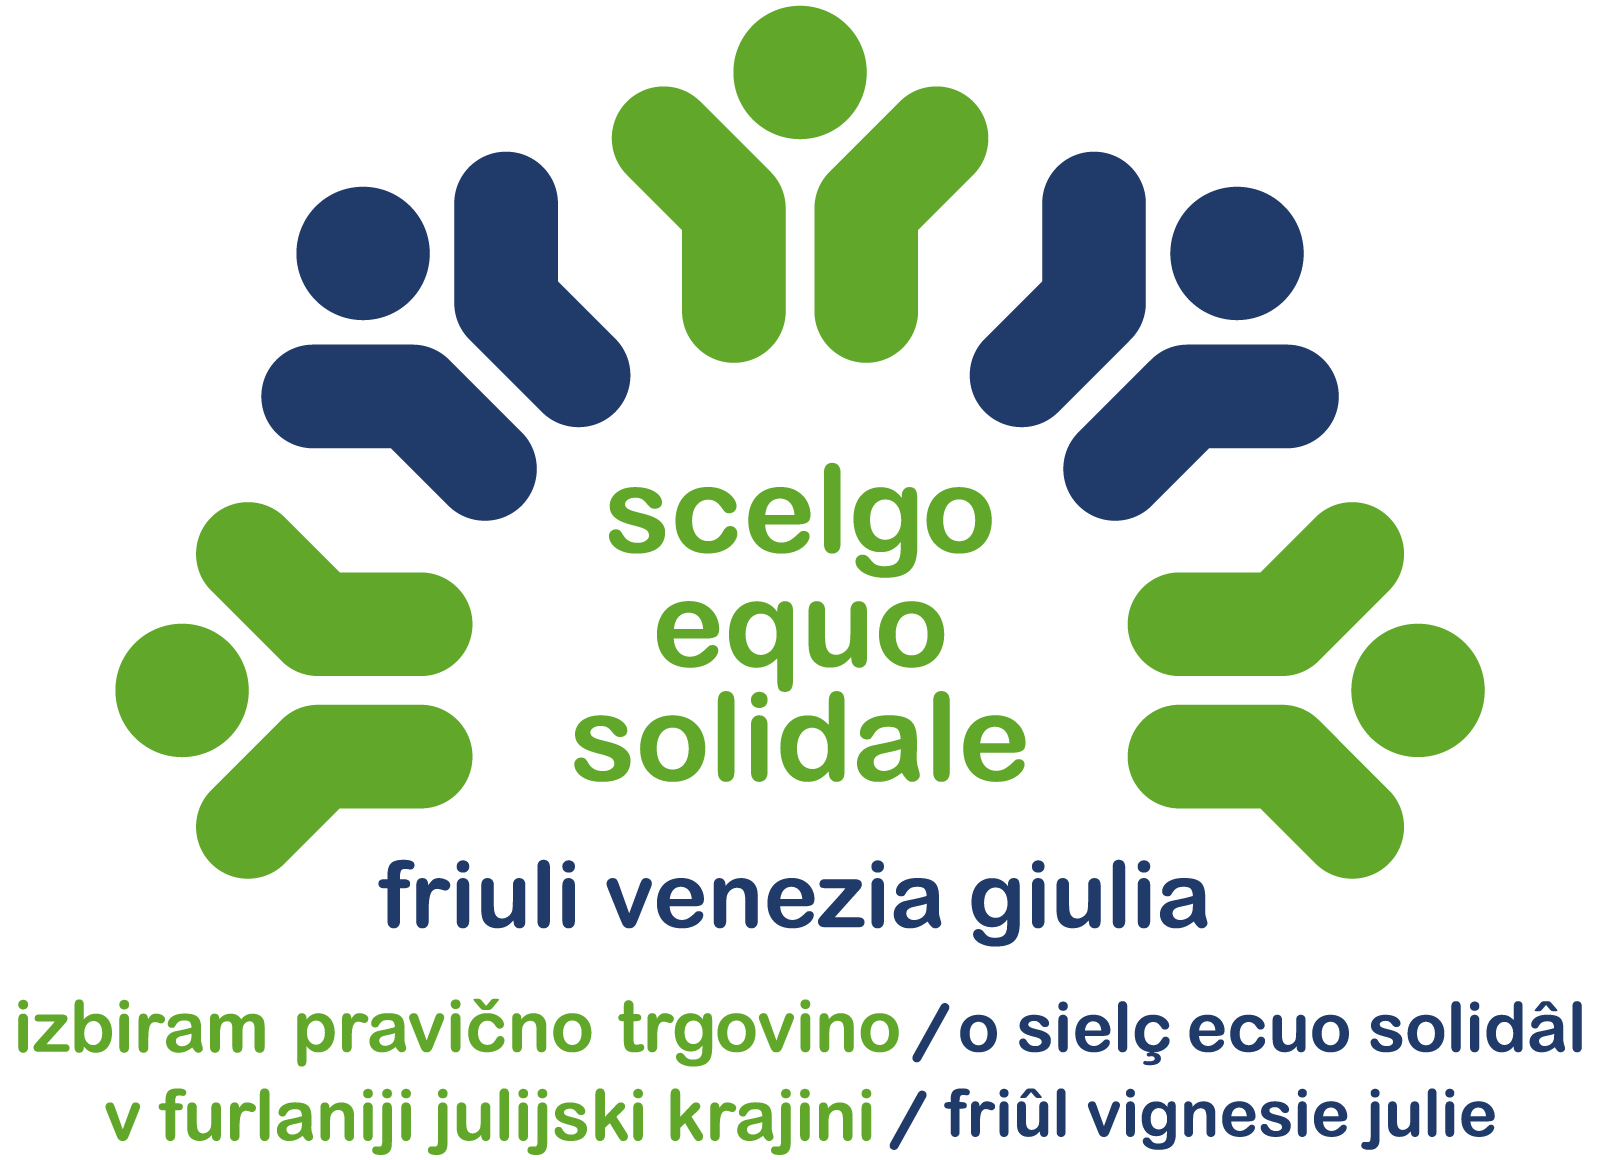 Equofvg.it - Commercio equo e solidale in FVG